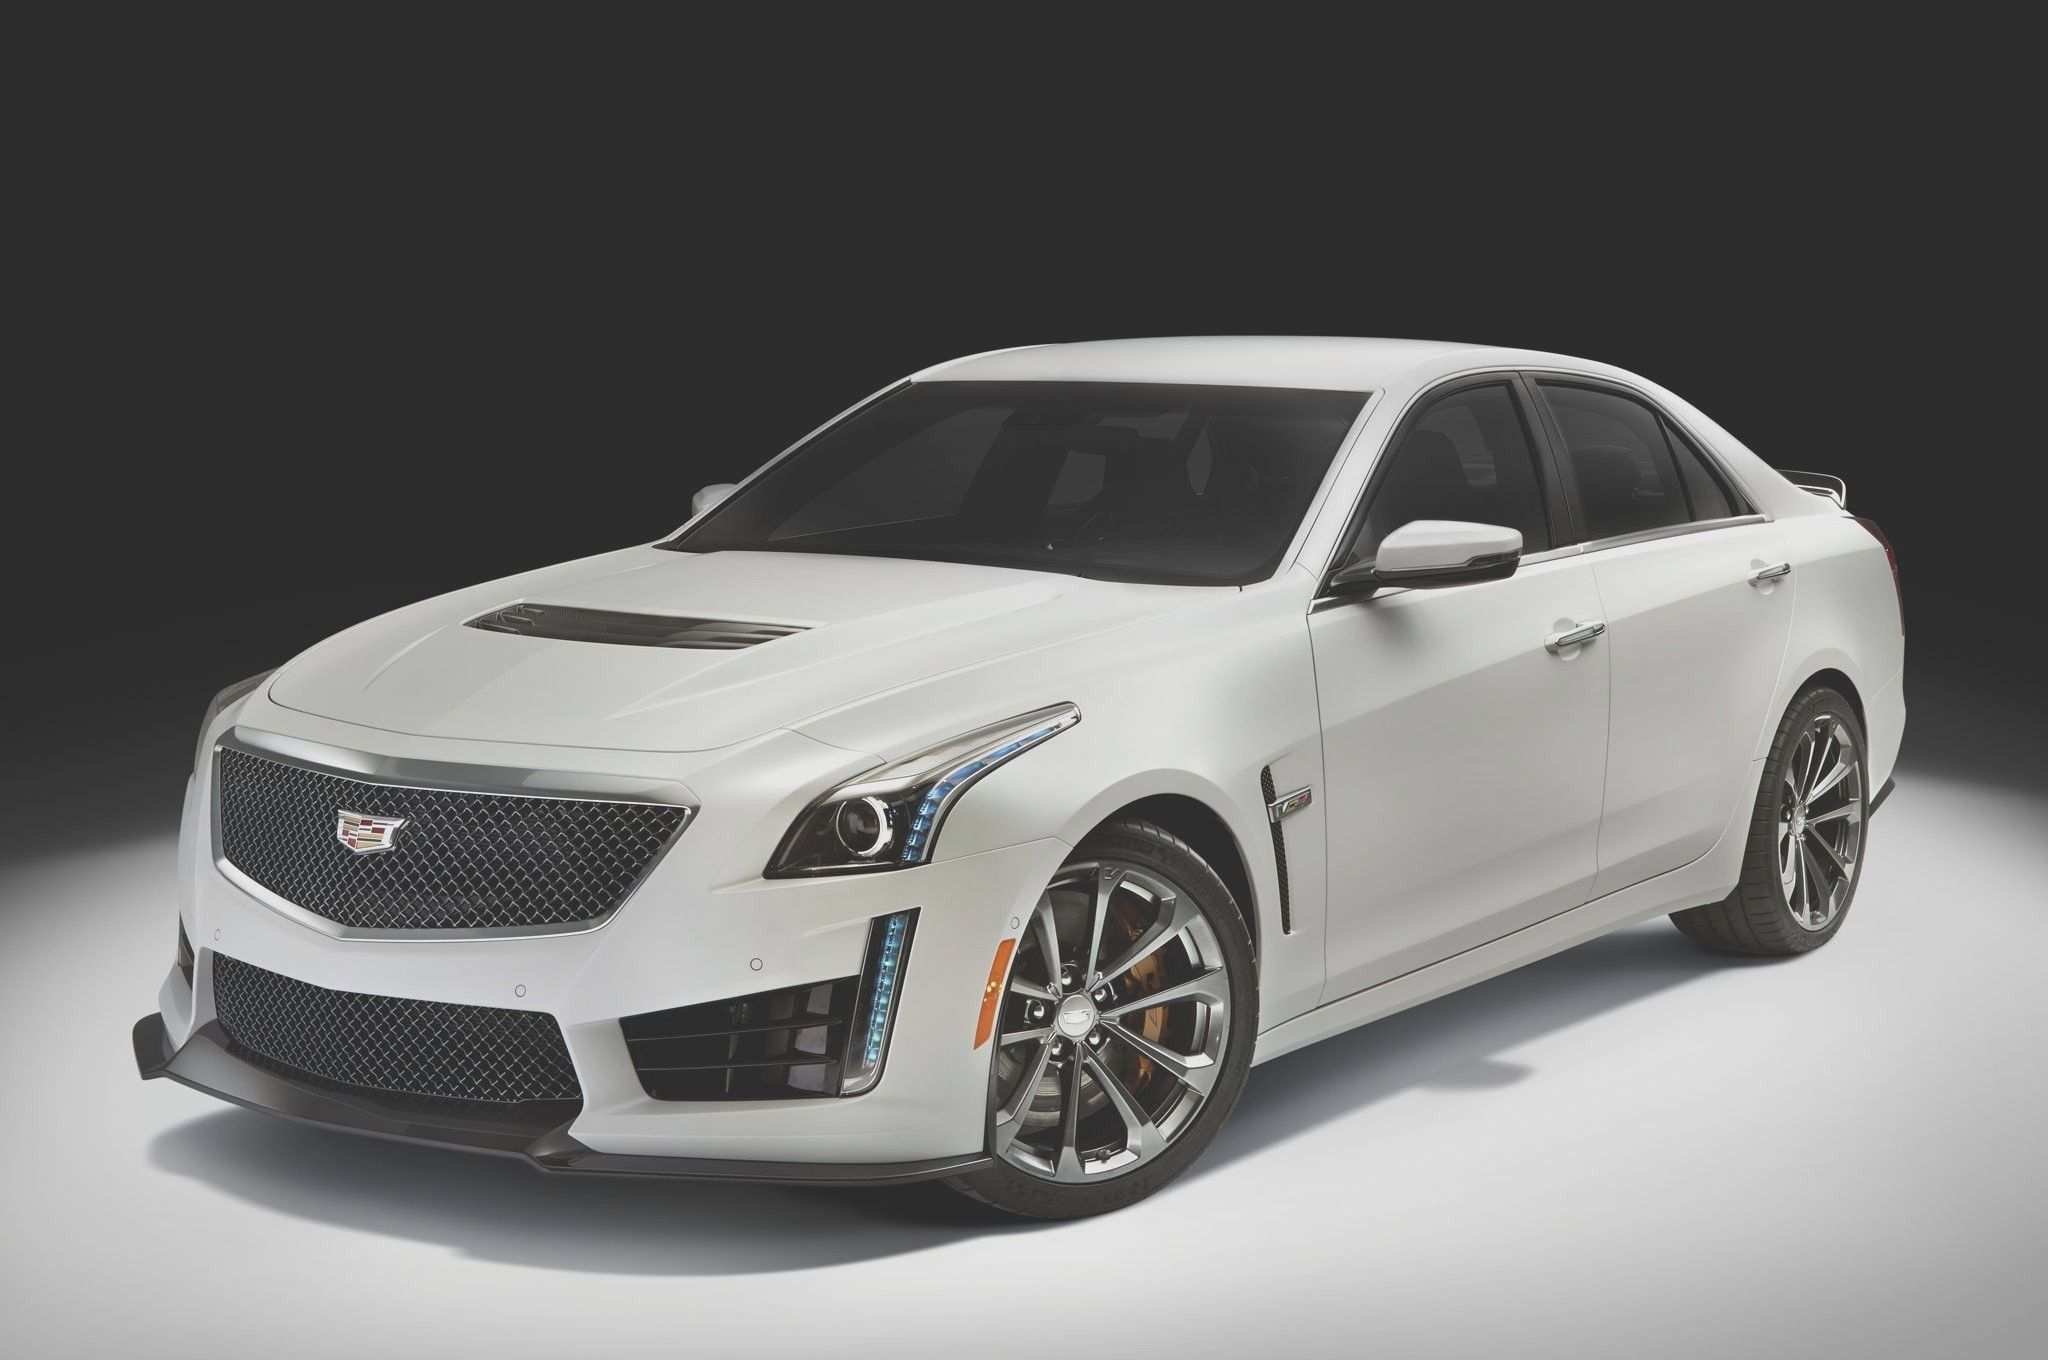 95 All New 2020 Cadillac Cts V Pricing for 2020 Cadillac Cts V